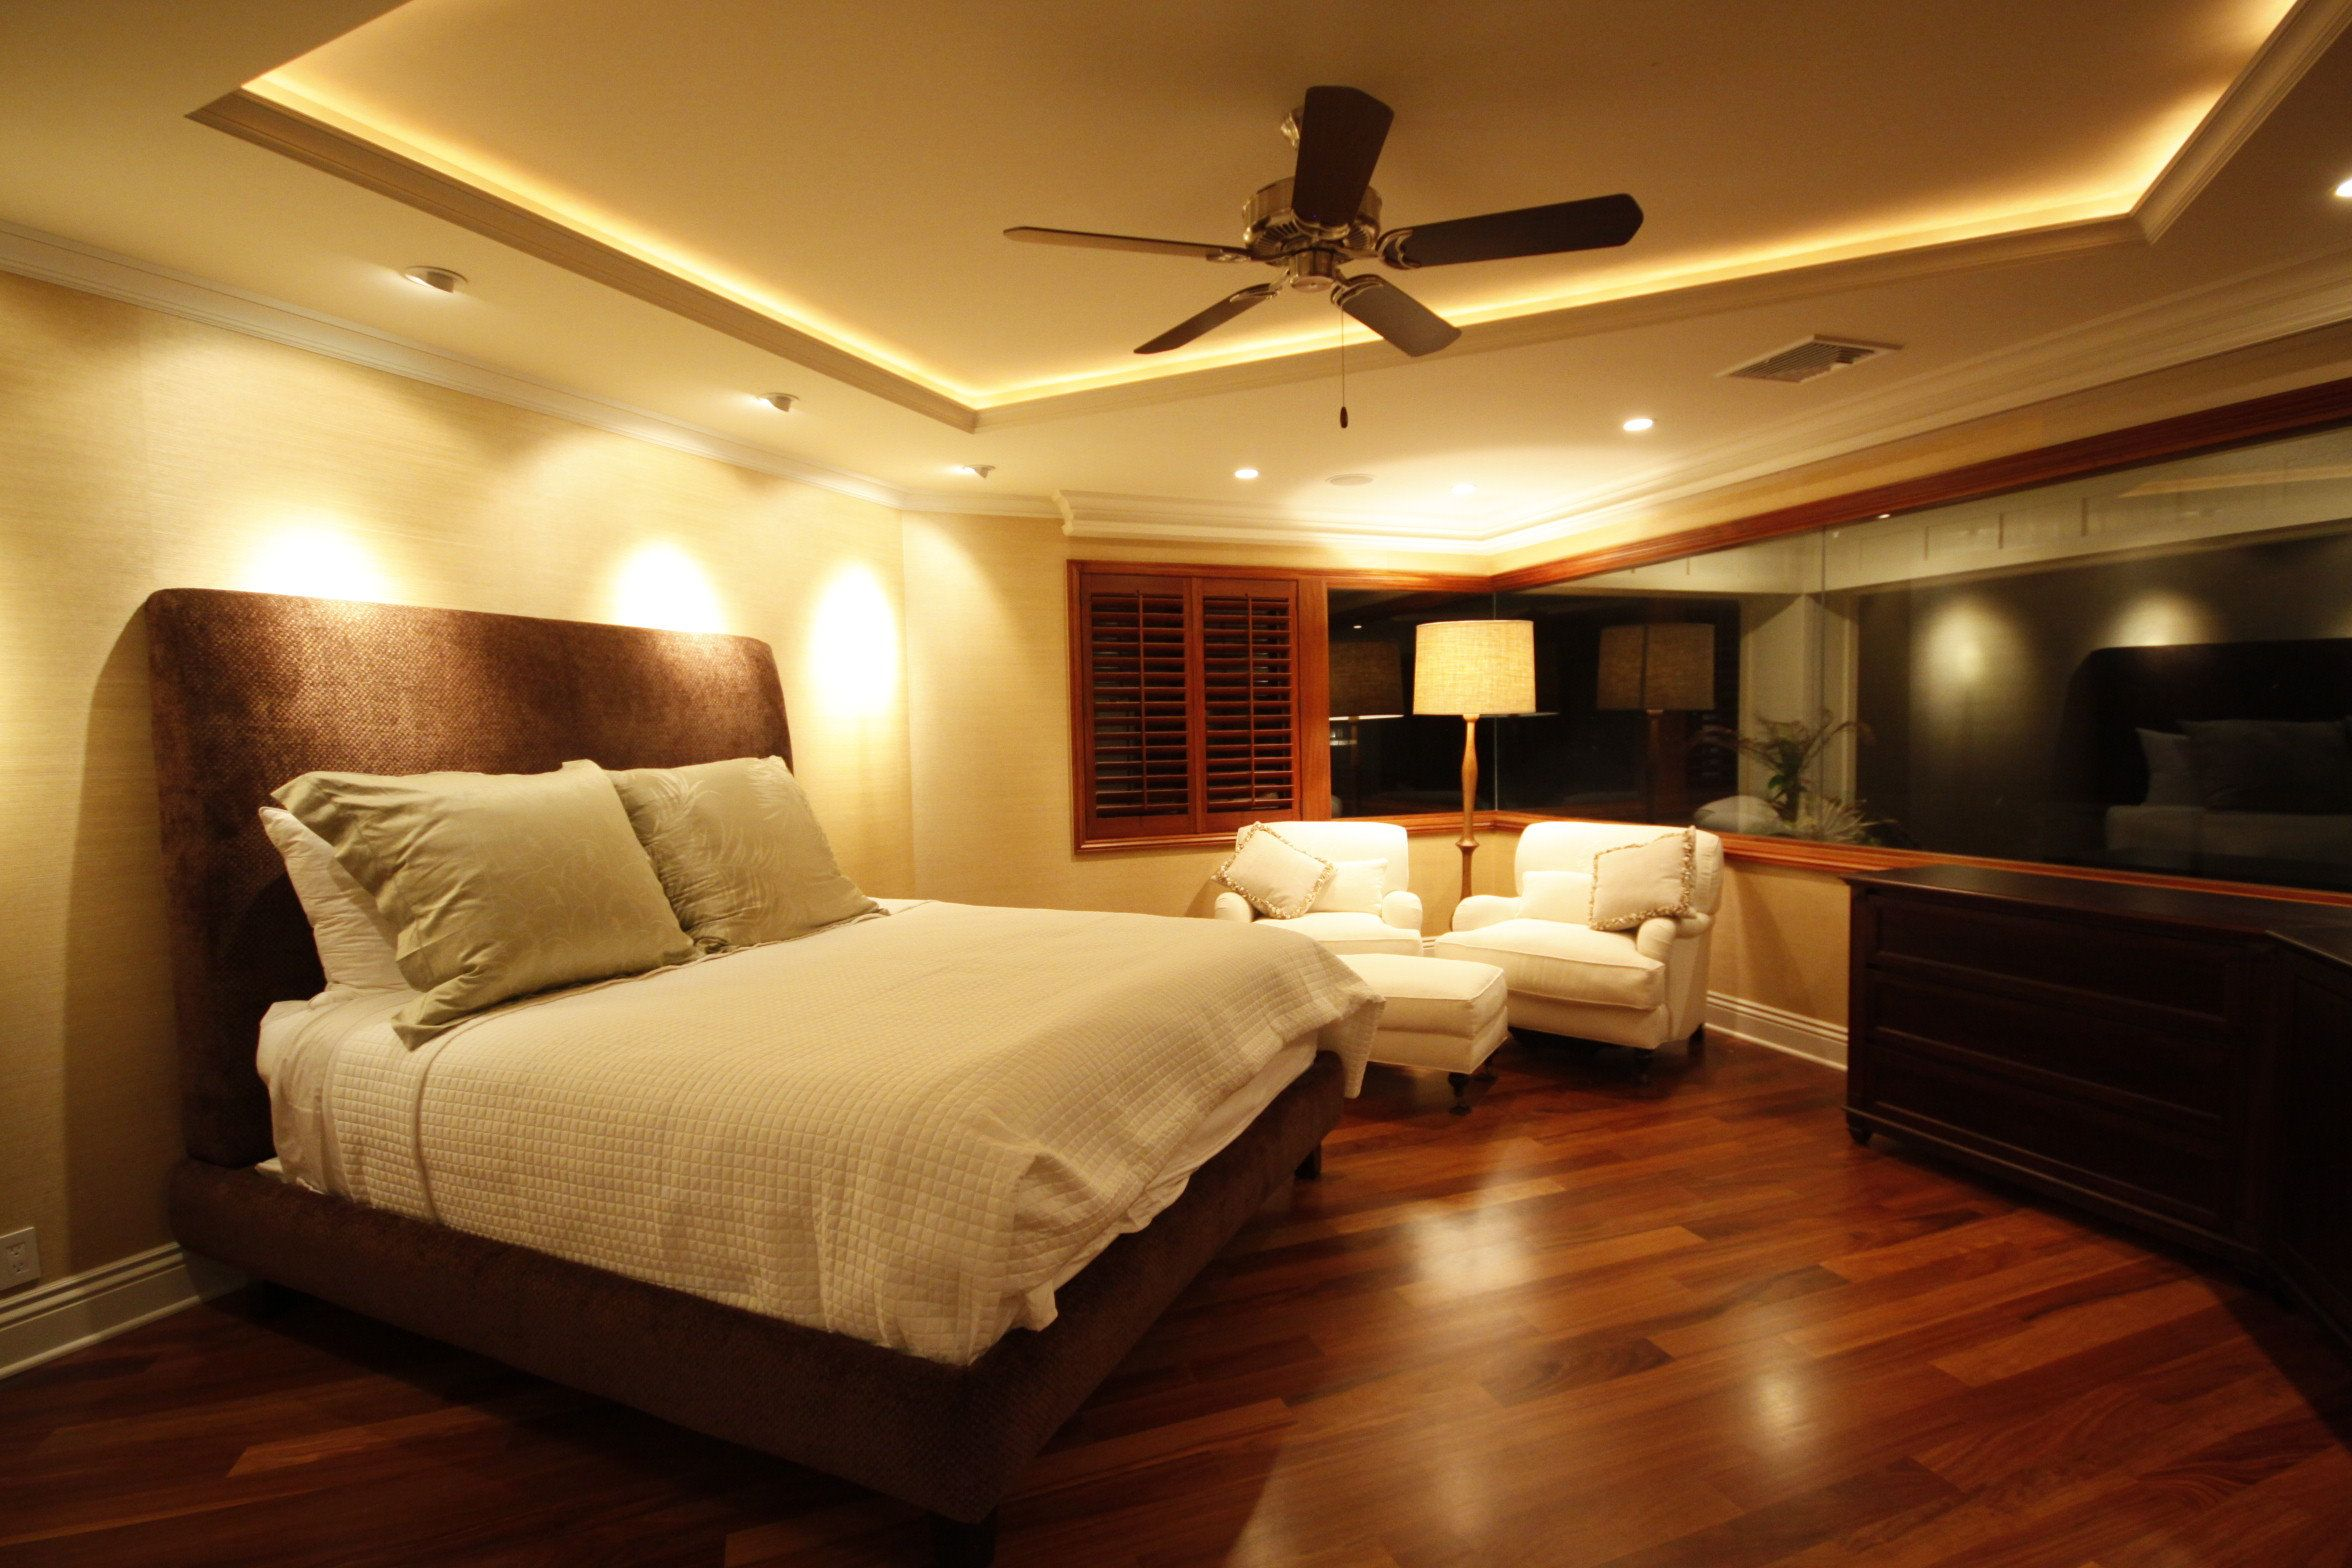 Appealing master bedroom modern decor with wooden floors for Master bedroom wall ideas